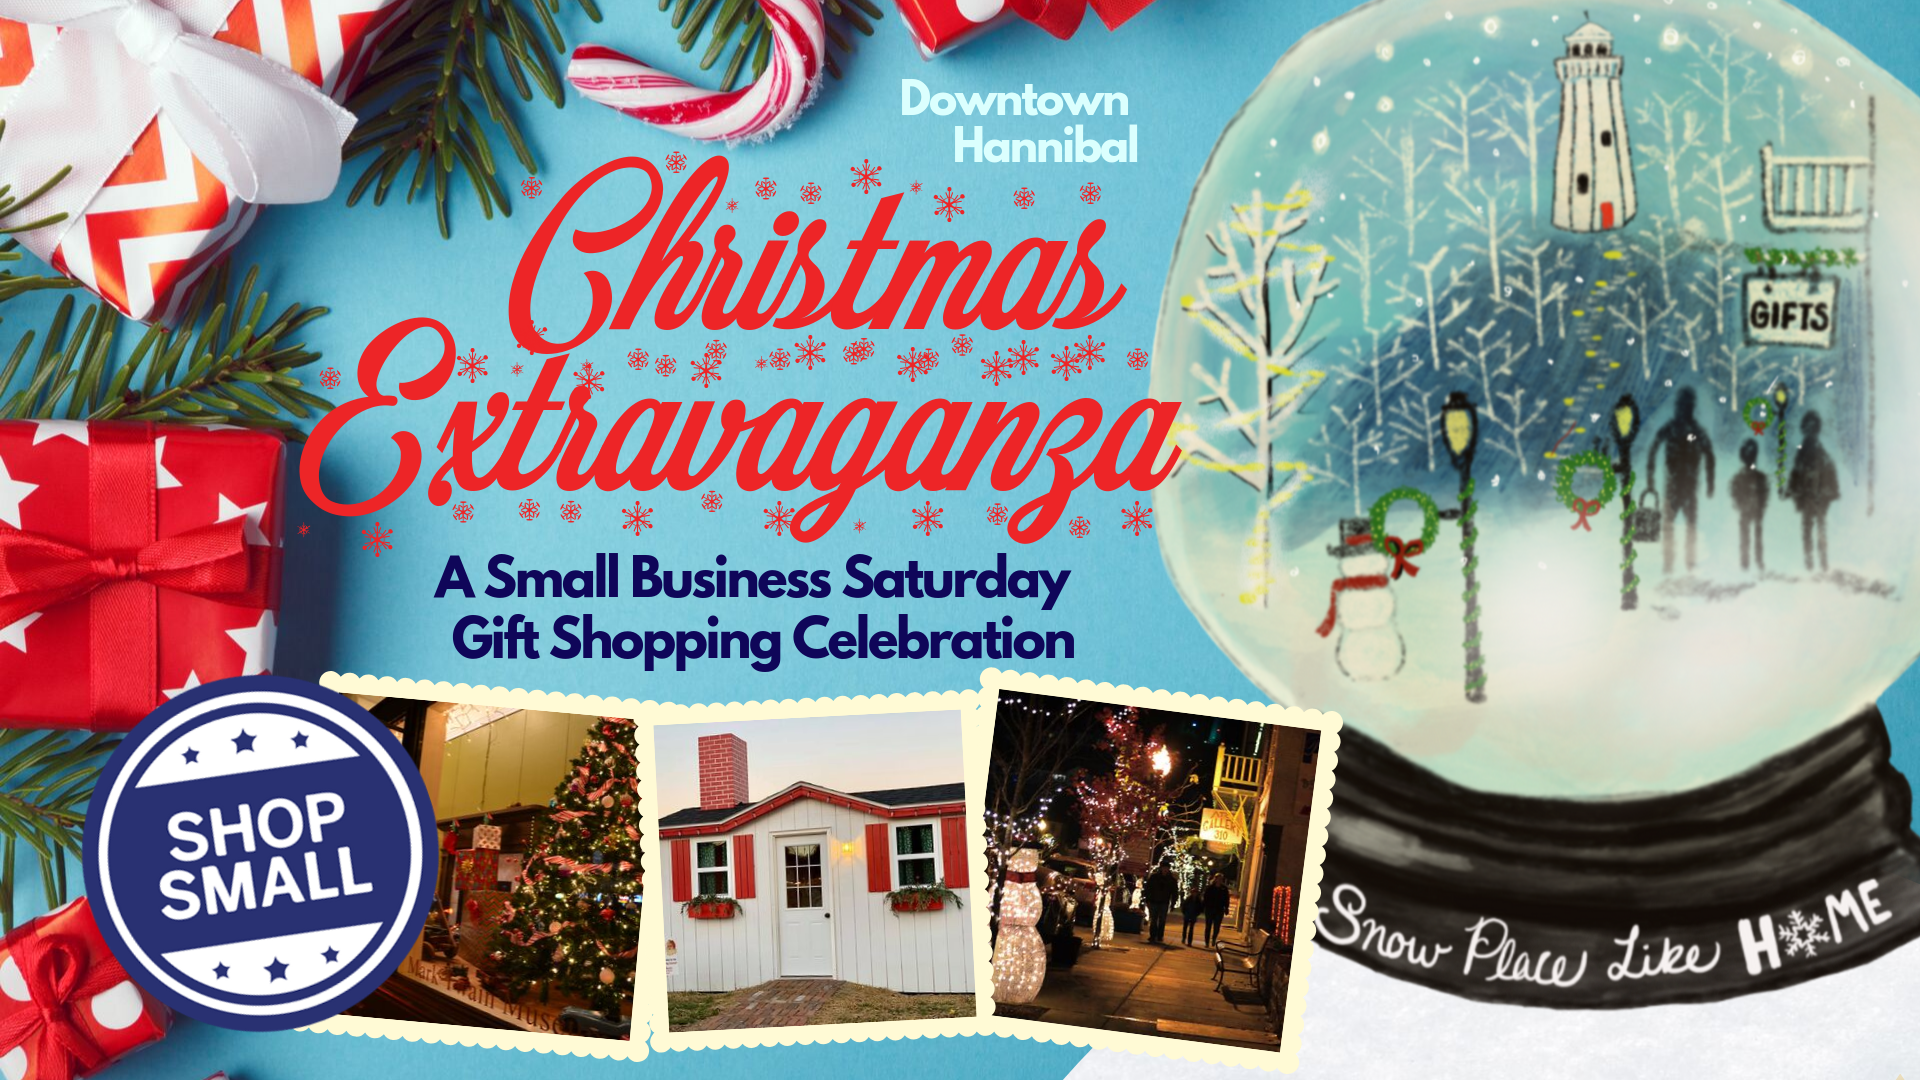 Christmas Extravaganza Downtown Hannibal